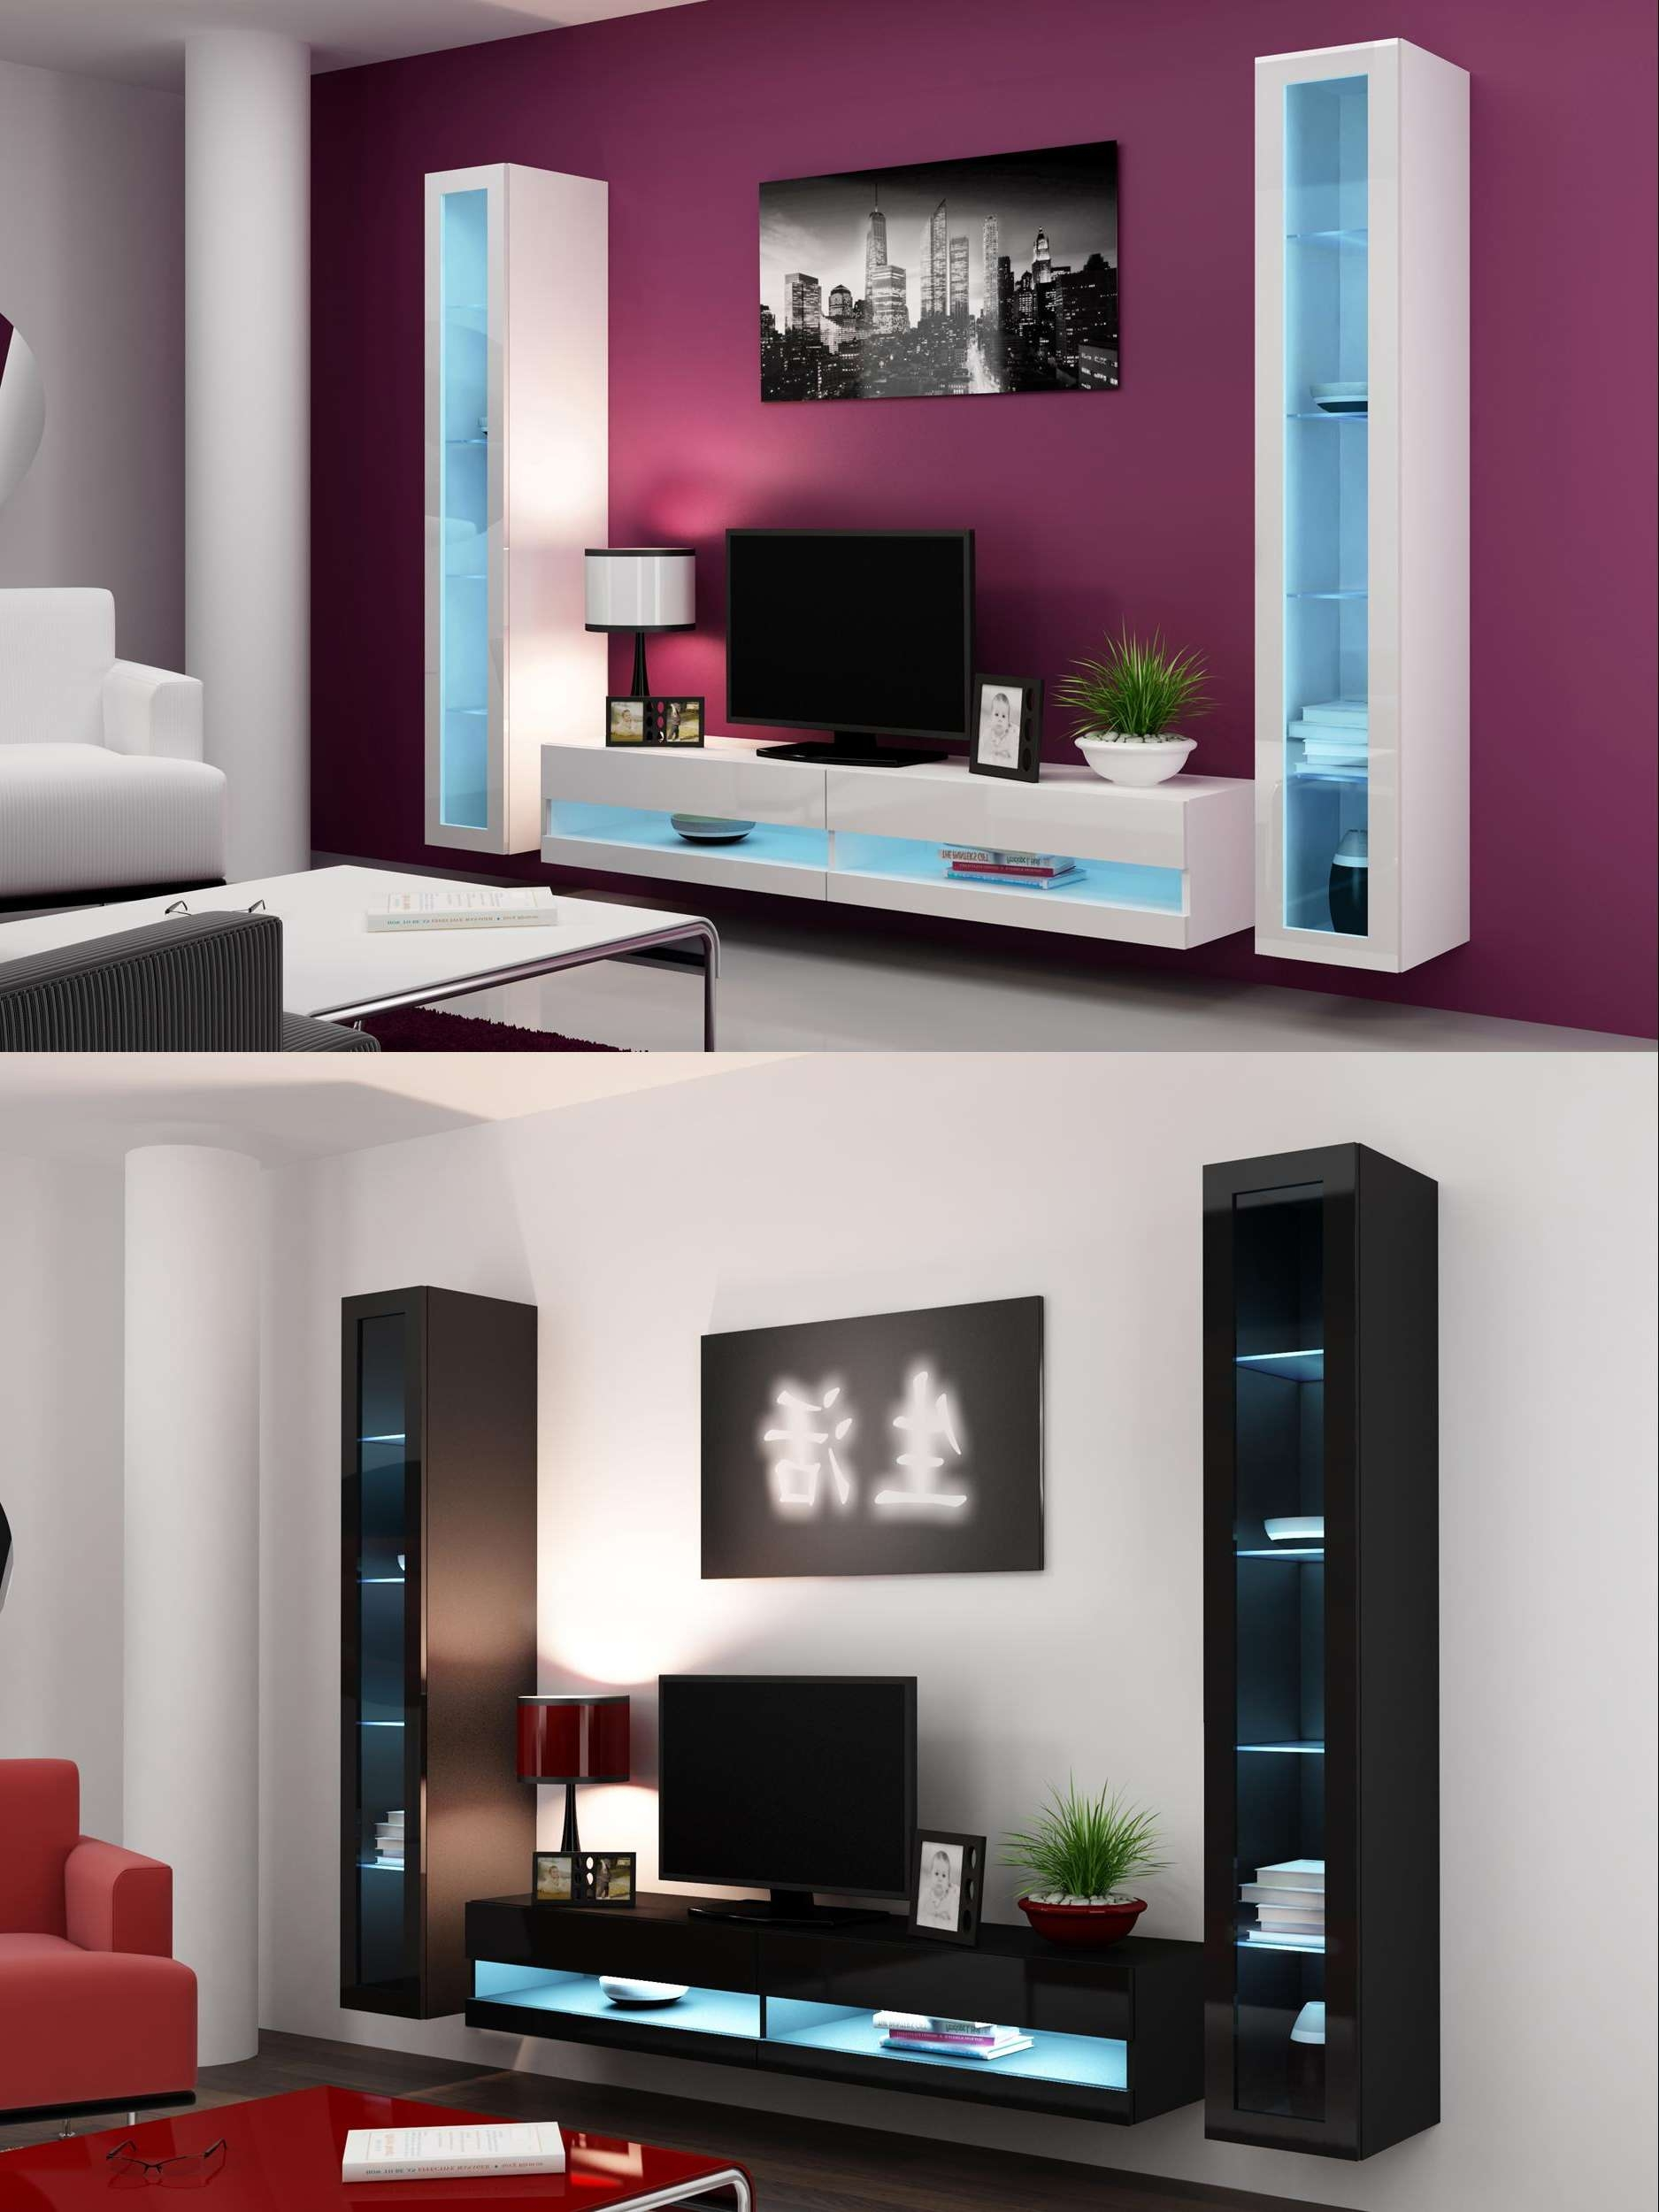 High Gloss Living Room Set With Led Lights, Tv Stand, Wall Mounted Inside Wall Mounted Tv Cabinets For Flat Screens (View 4 of 20)